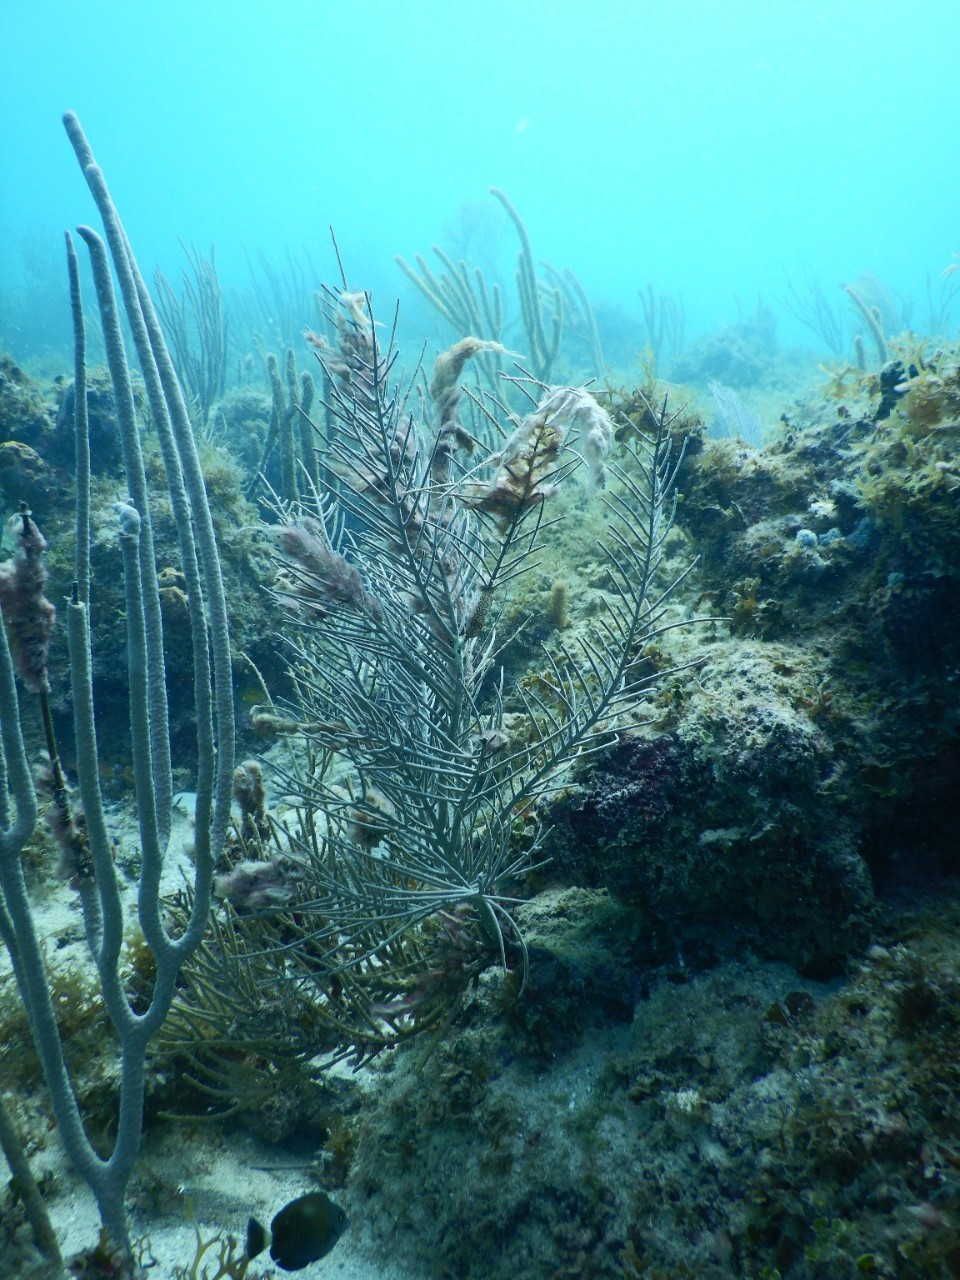 Damaged gorgonian corals on a reef on St. John, U.S. Virgin Islands. The wispy, white strands clinging to the edges of the coral are harmful cyanobacteria, which have grown on injured areas.  Photo: Howard Laske